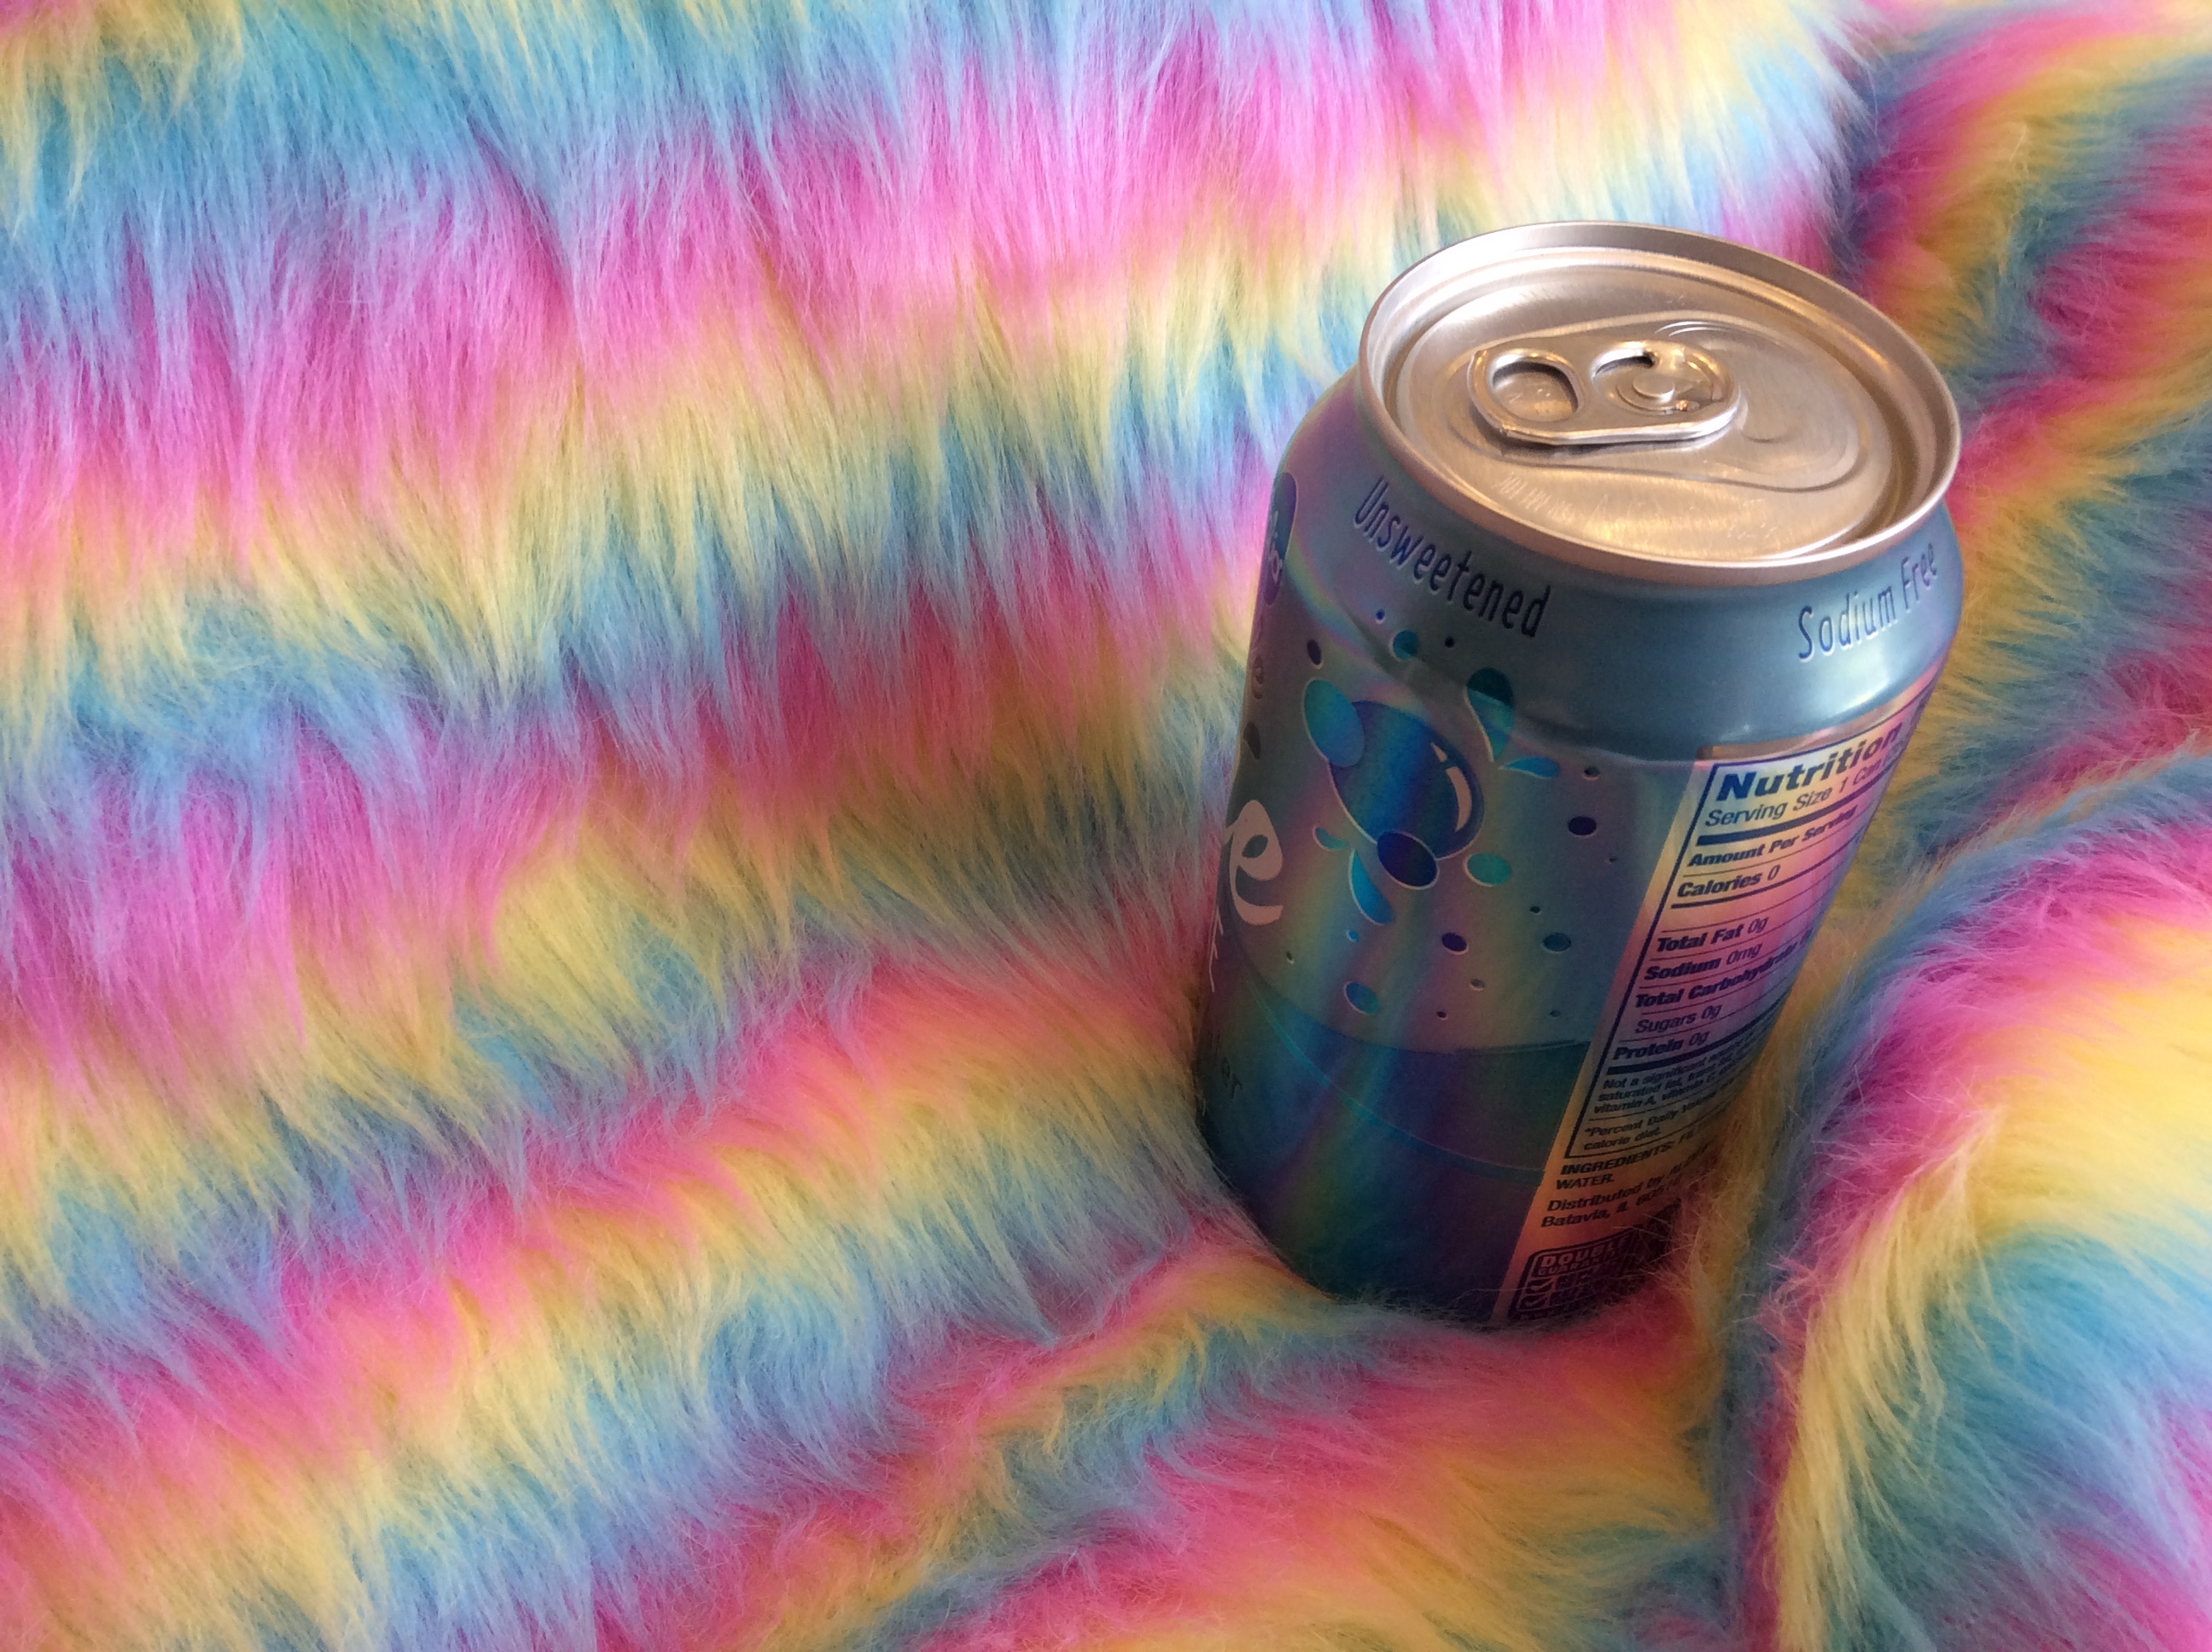 Striped faux fur with seltzer can for scale